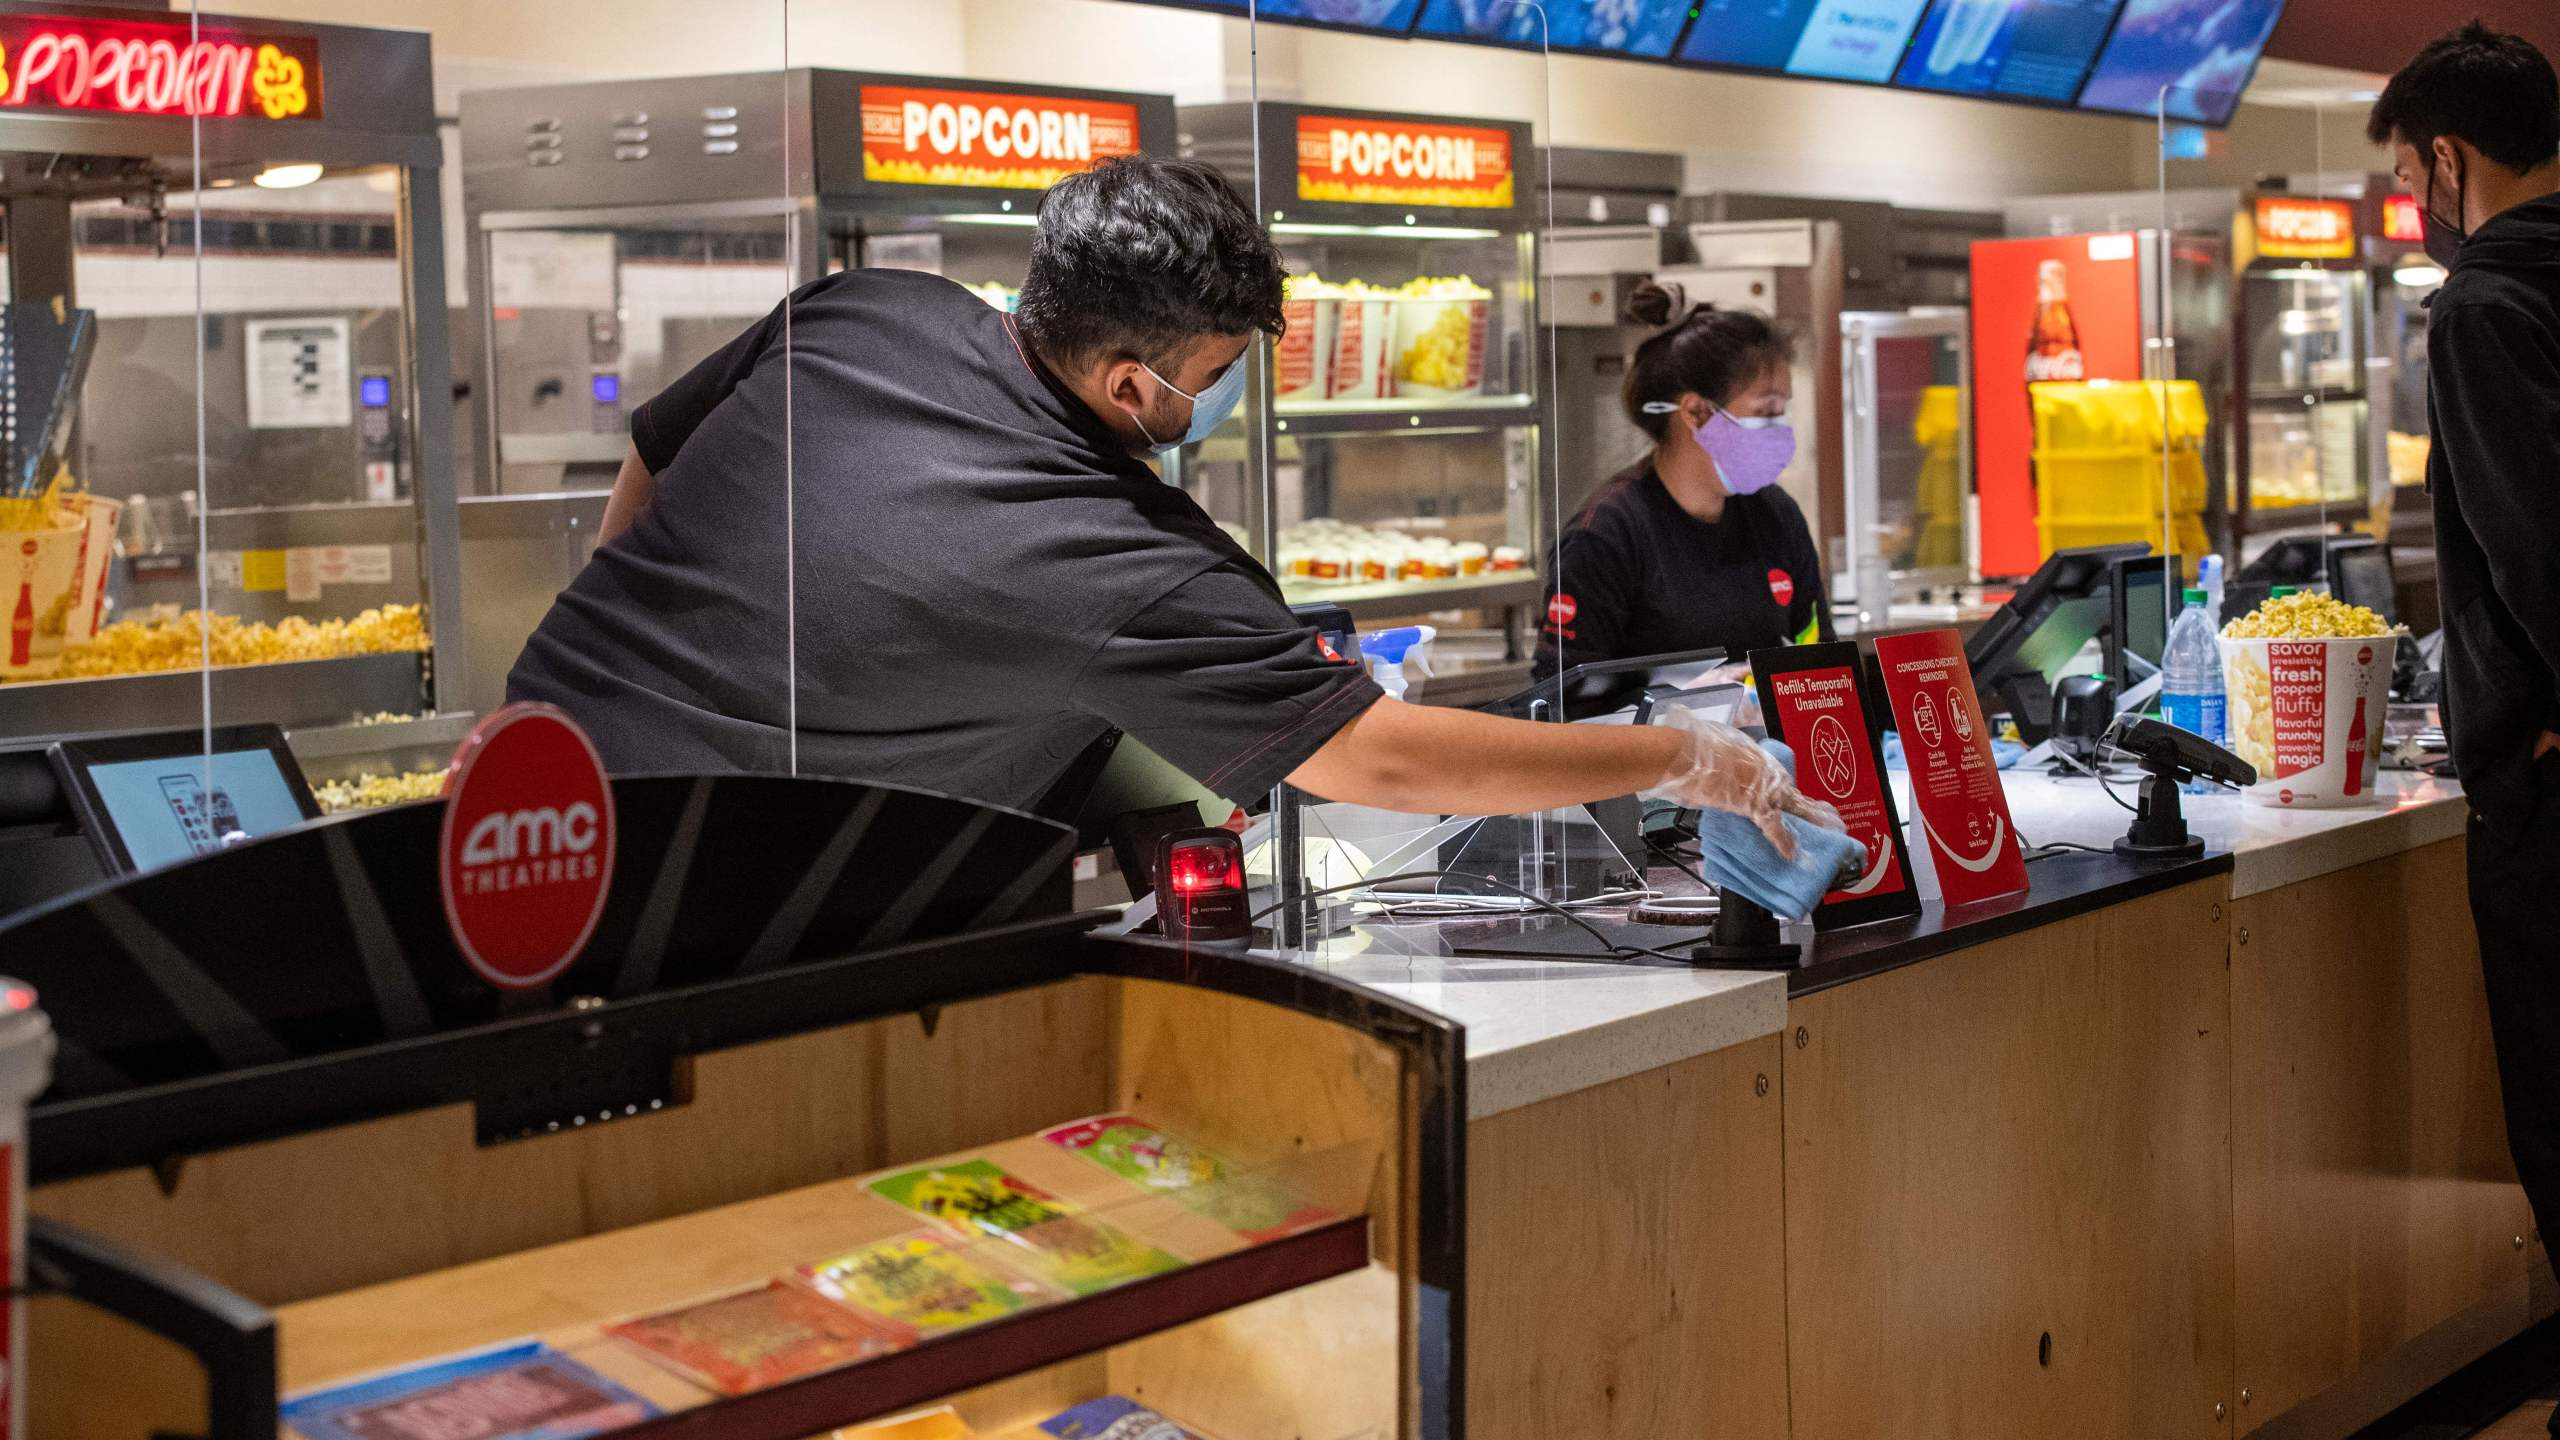 An AMC employe sanitize the counter after each customer at the AMC Burbank theatre concession stand on reopening day in Burbank, California, March 15, 2021. (Valerie Macon/AFP via Getty Images)